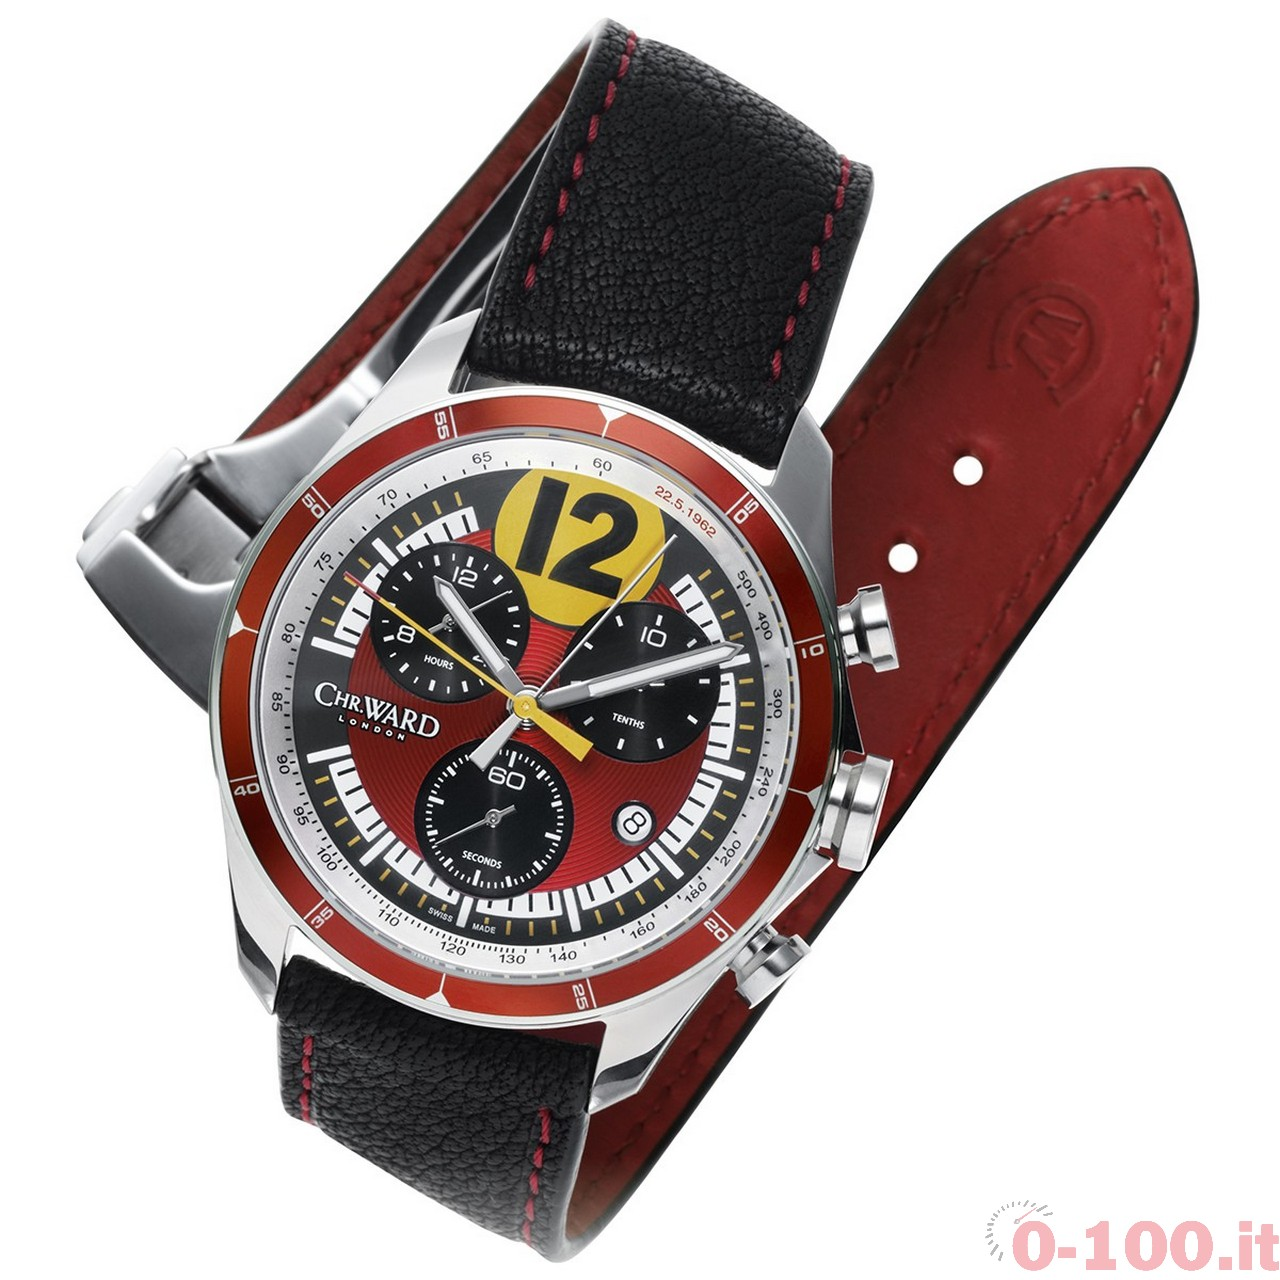 christopher-ward-tmb-art-metal-c70-3527gt-250-gto-chronometer-limited-edition_0-100_6